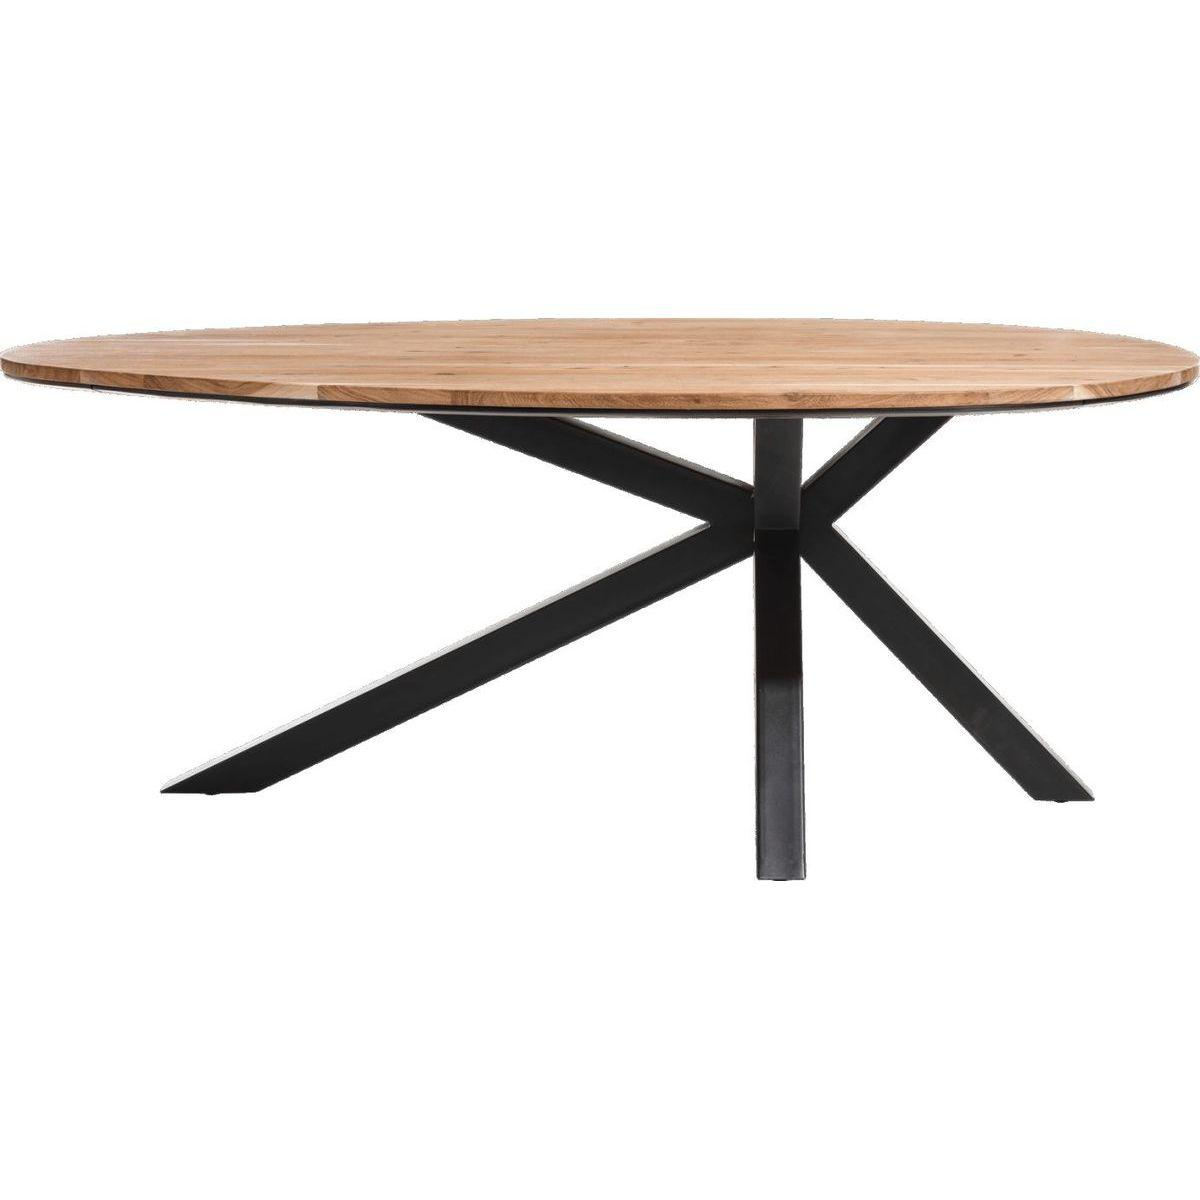 Table ovale colombo xooon bois kikar smoked 200x120cm for Table haute ovale